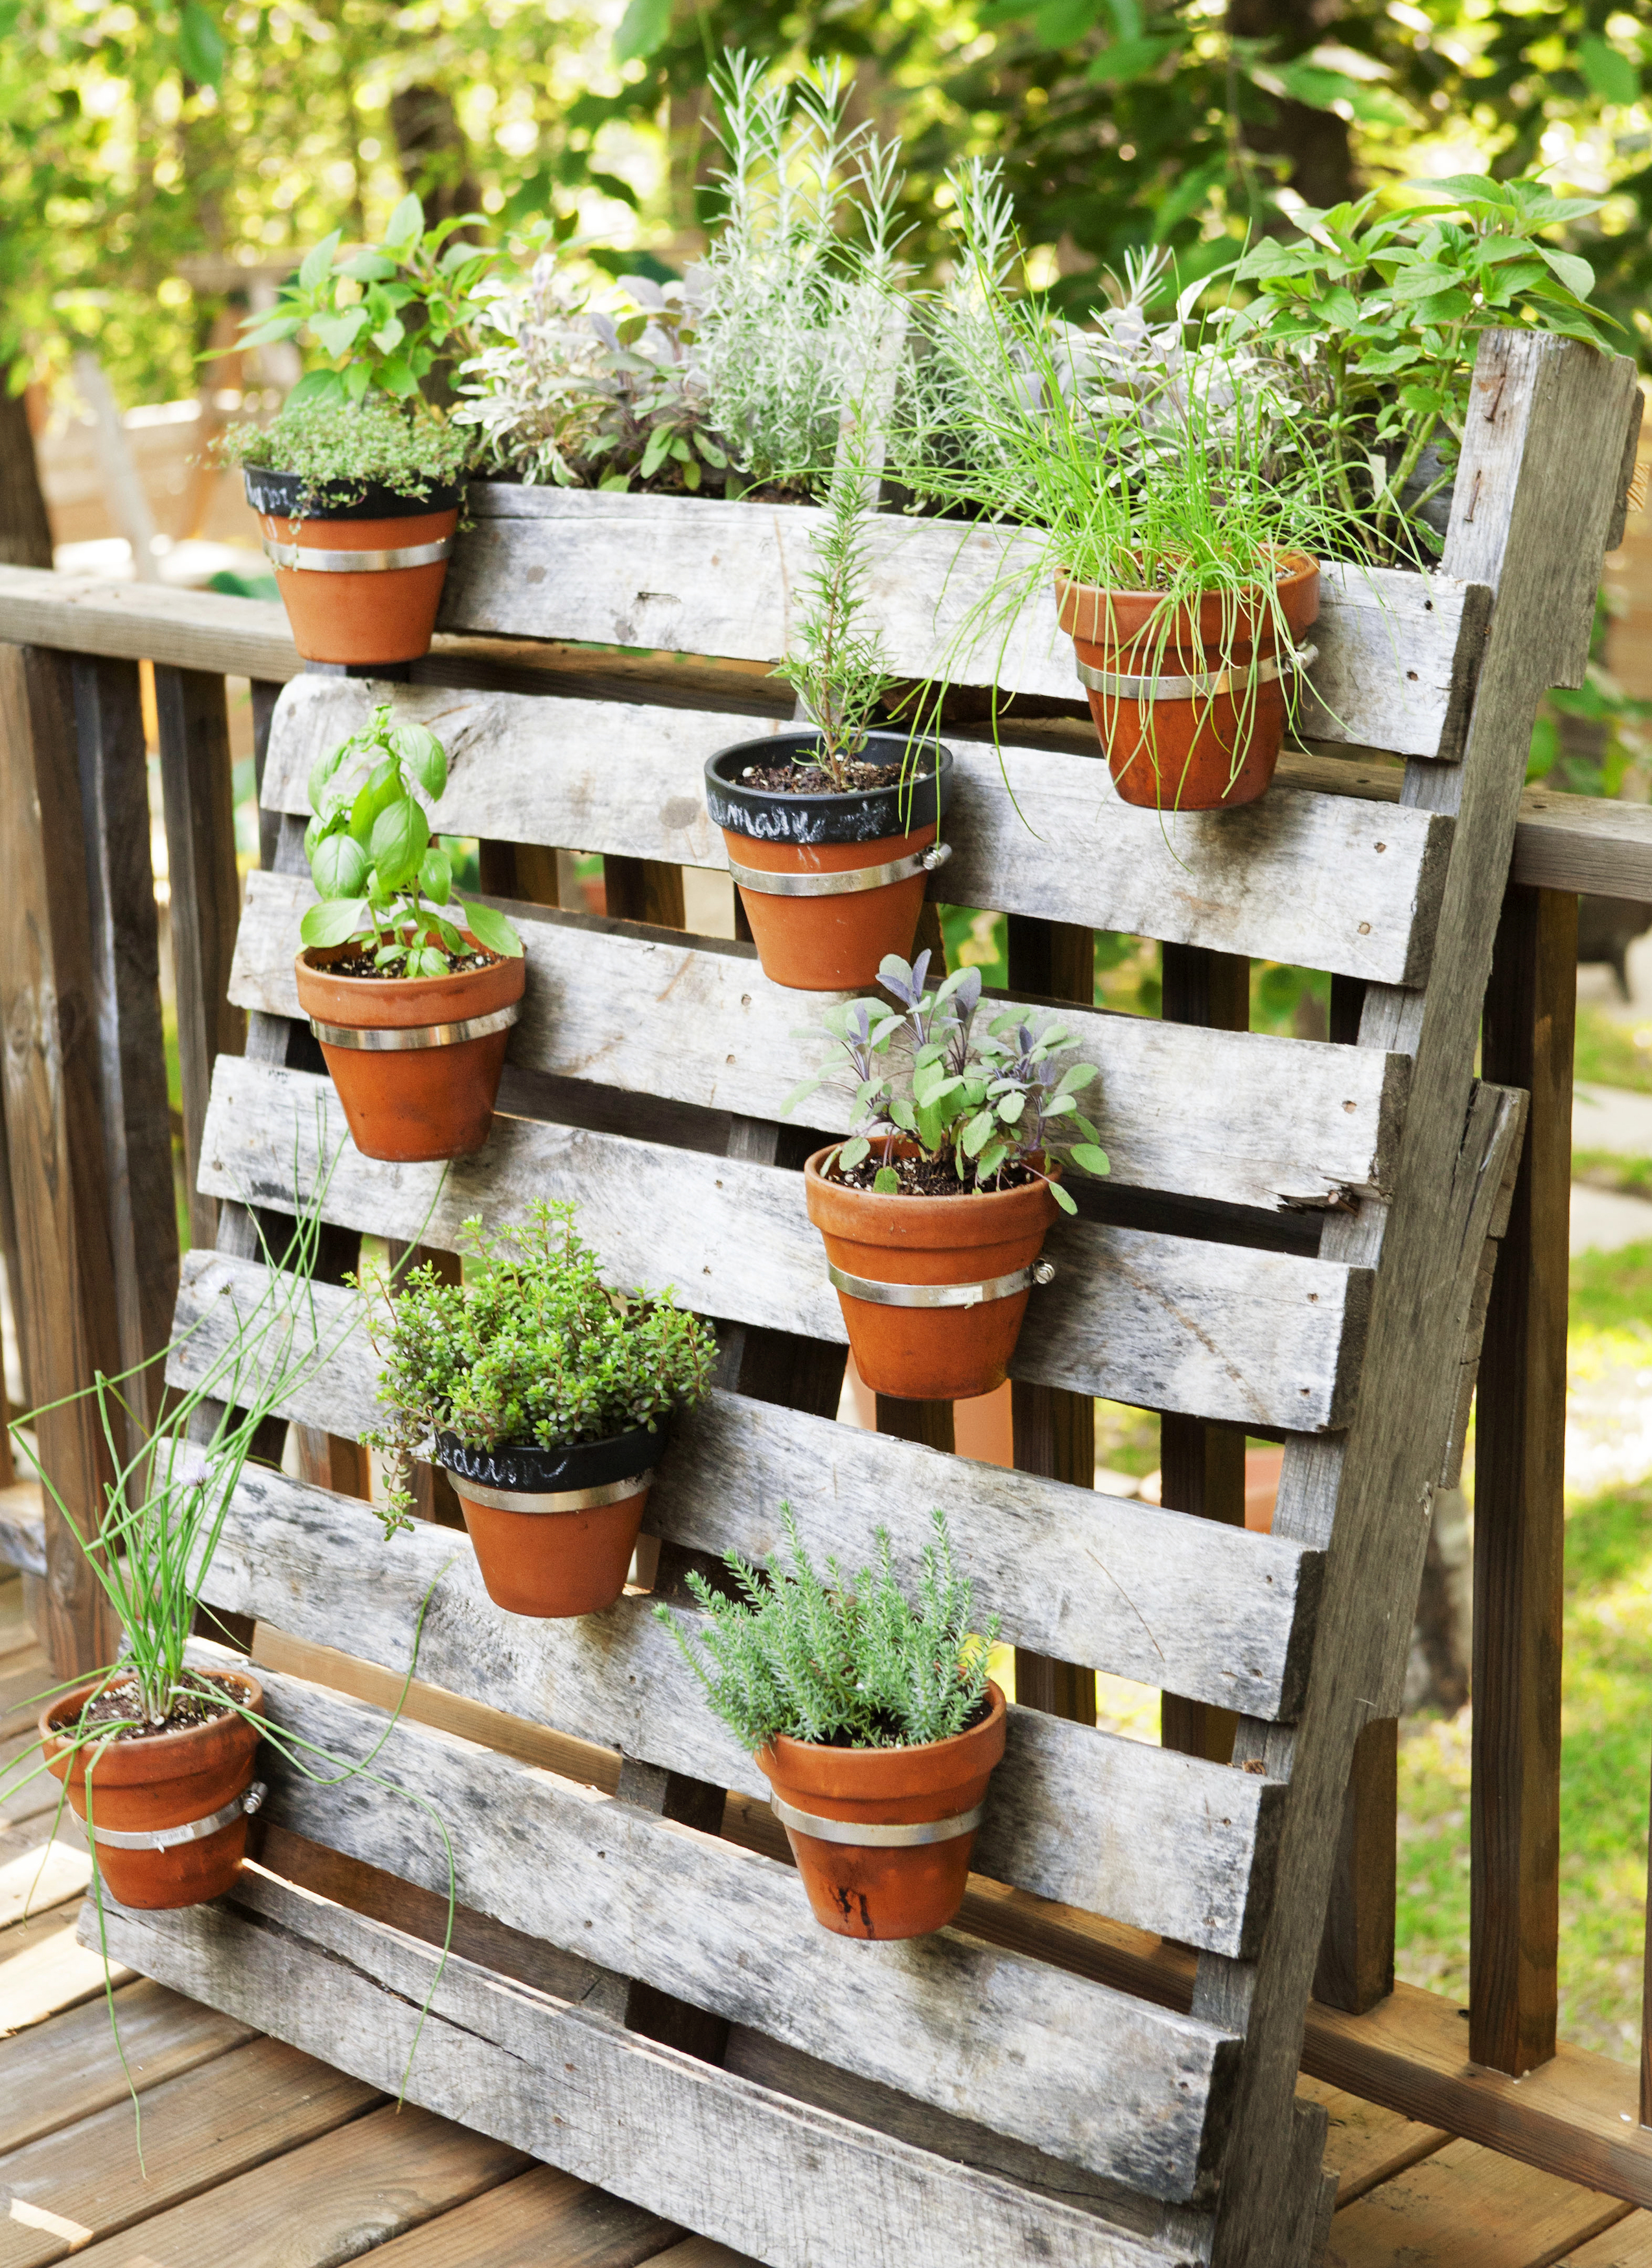 13 container gardening ideas potted plant ideas we love for Outdoor planter ideas